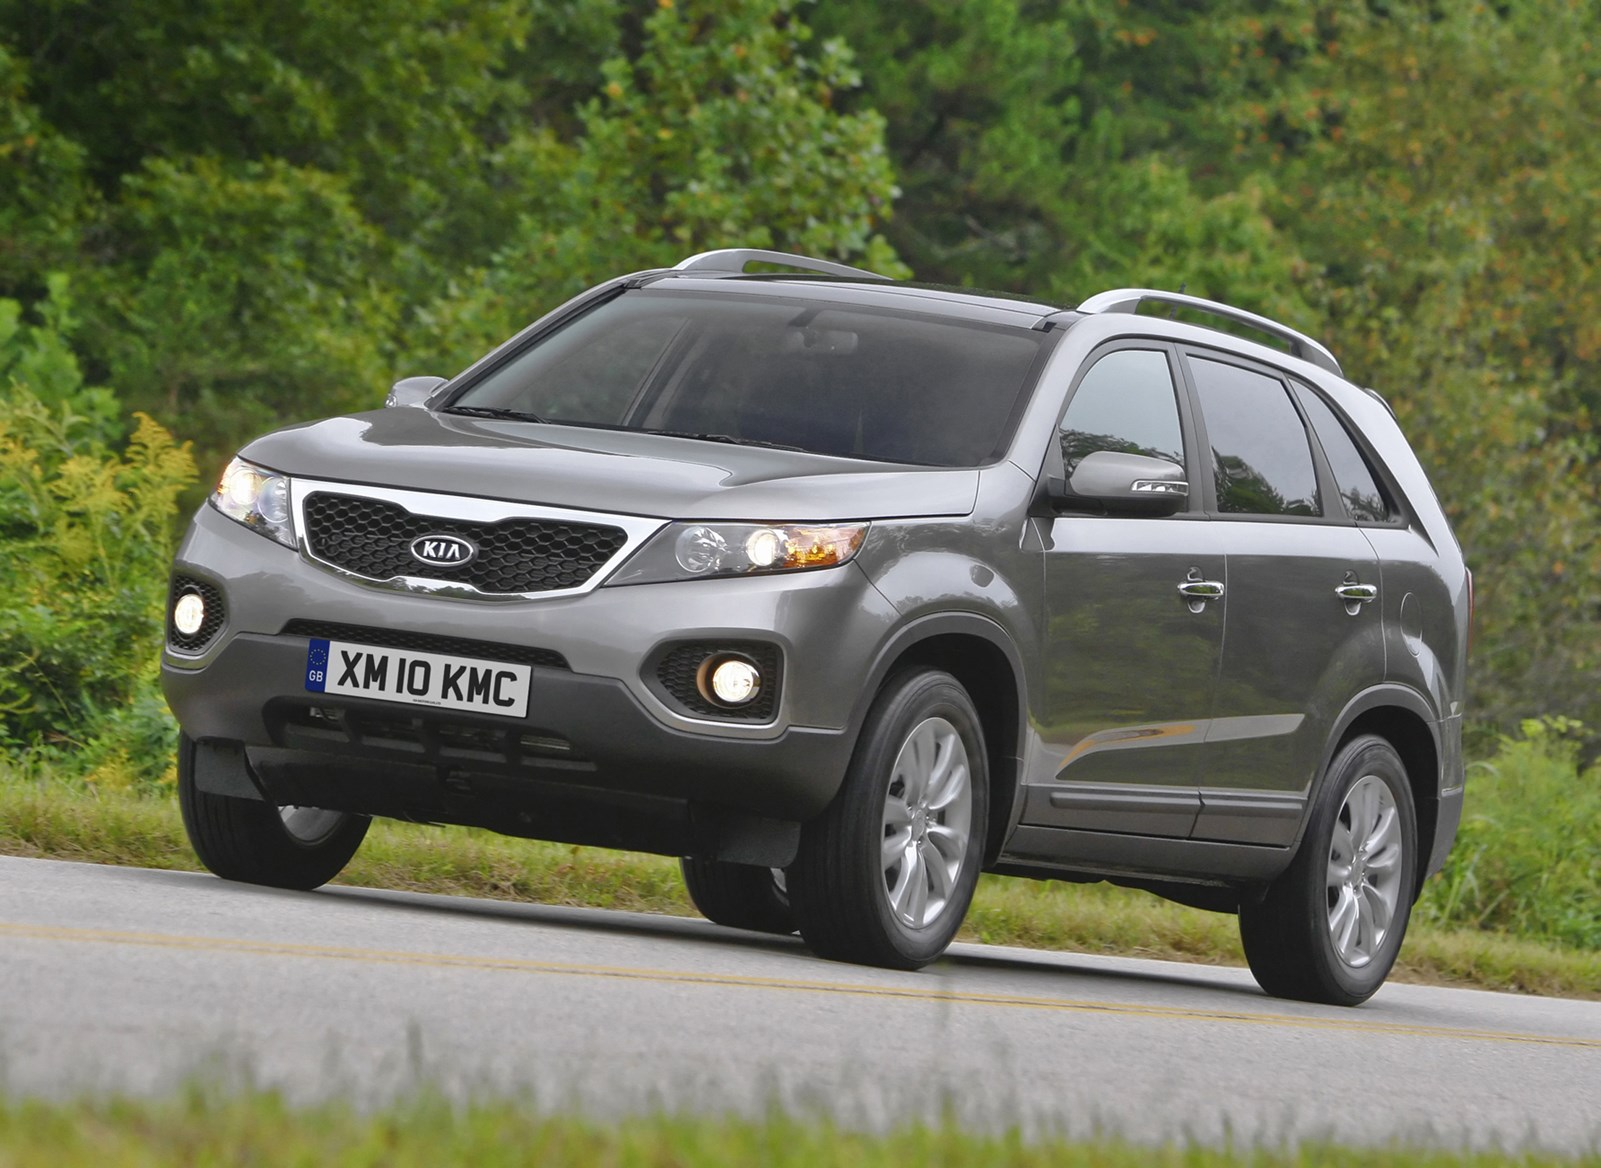 kia sorento estate review 2010 2014 parkers. Black Bedroom Furniture Sets. Home Design Ideas